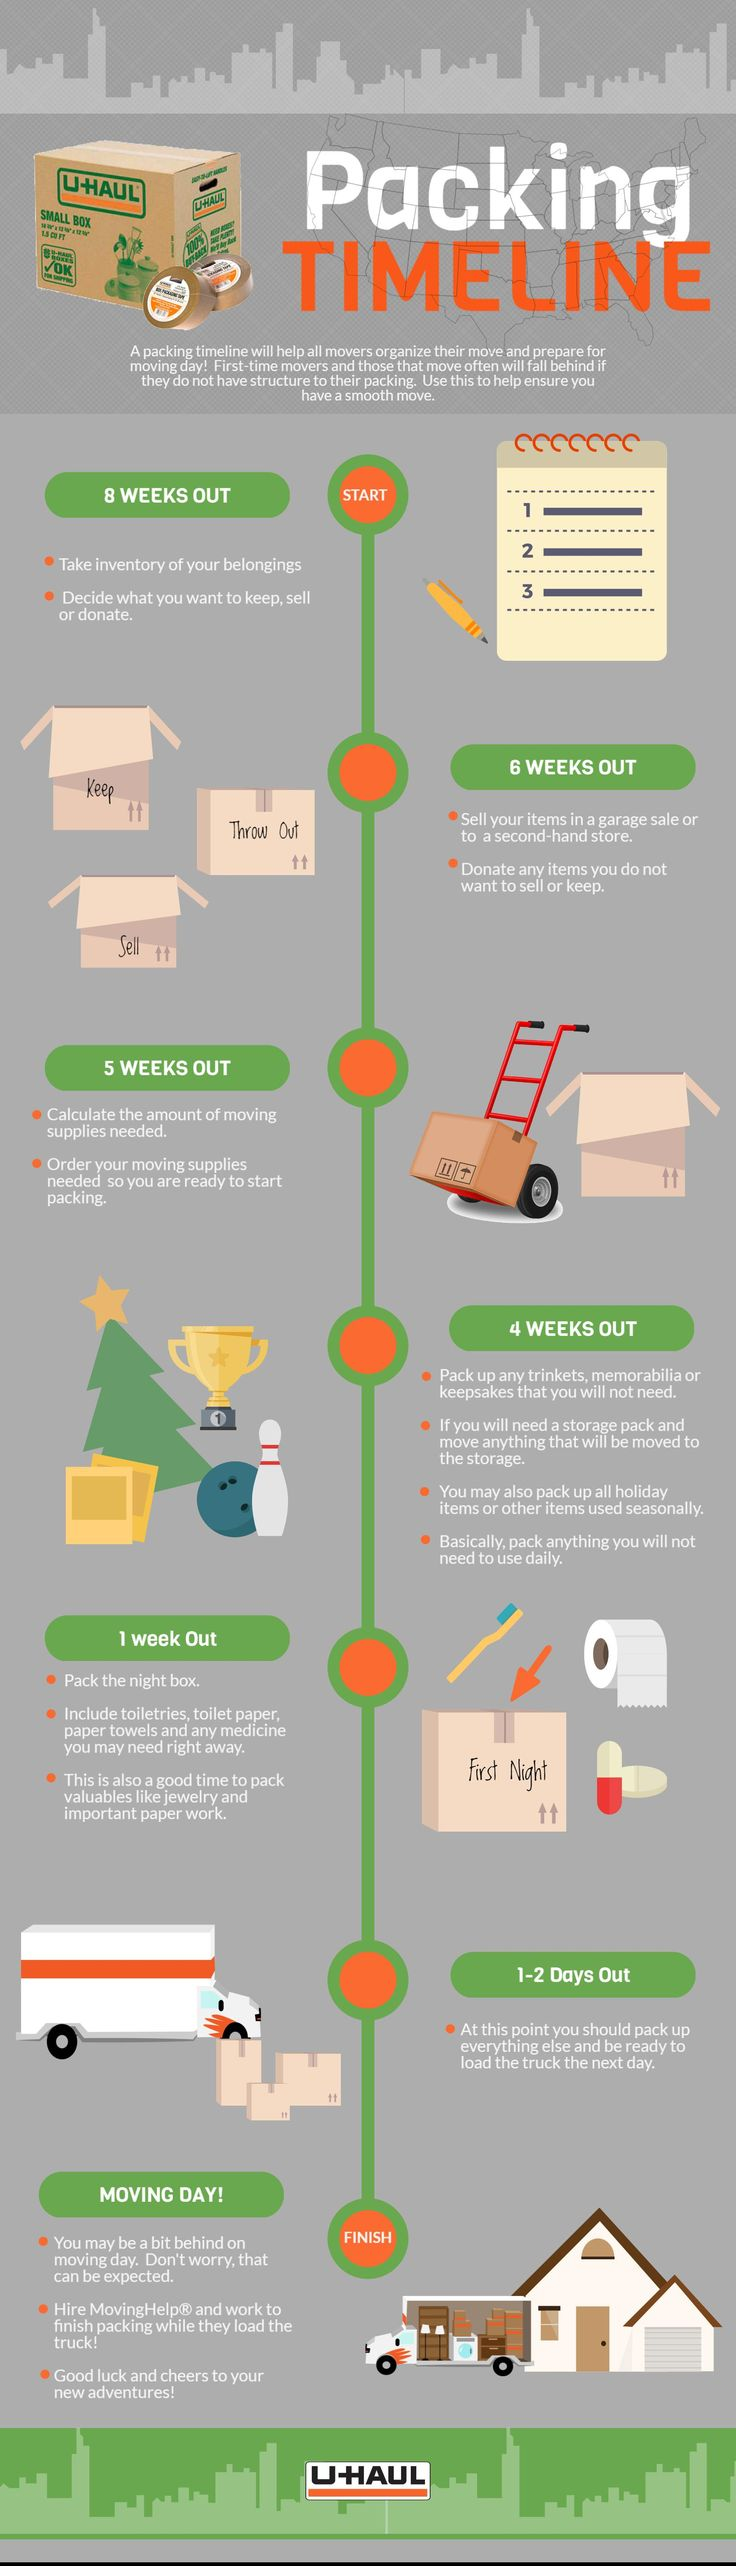 We've all been there. Maybe you've been the procrastinator – you know the one who puts off packing the entire house until the weekend of the move. Maybe you're a play it safe and you've packed up too much too far away from the move and you're scrambling and digging around to find your hairbrush among the moving boxes. The tips and this infographic will help you nail down a packing timeline to organize your move! I Packing for your Move